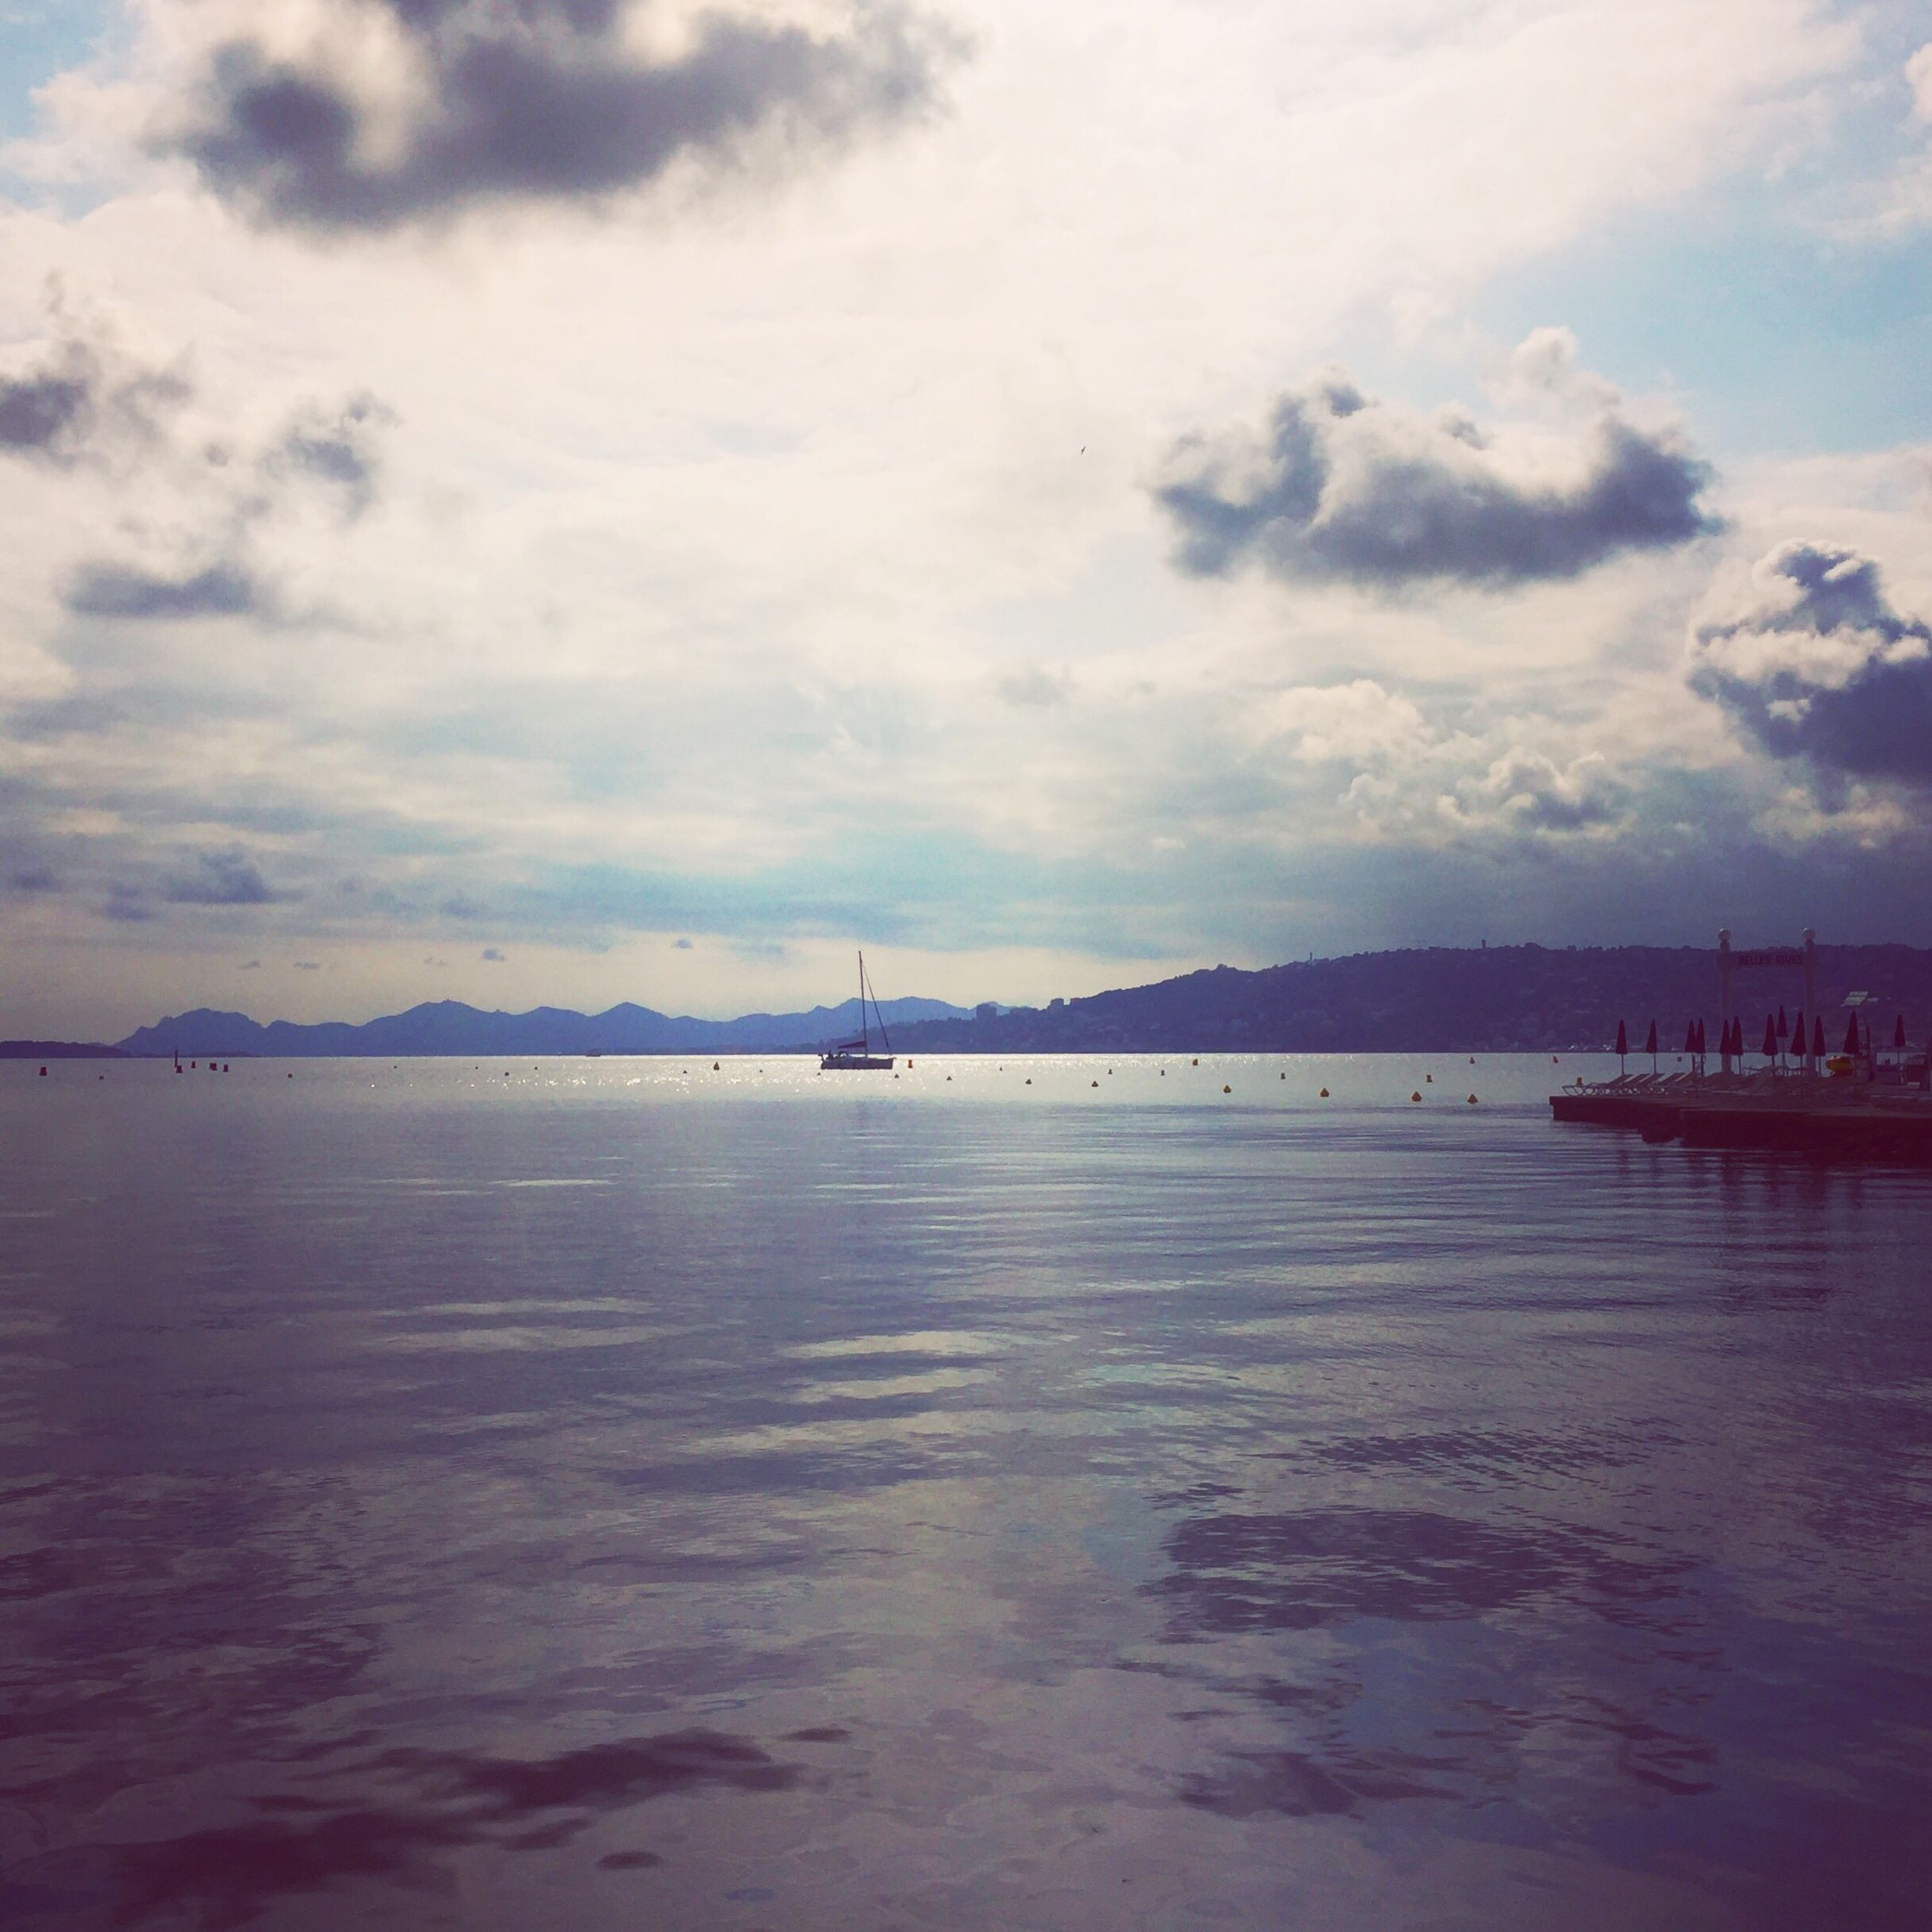 water, sky, tranquil scene, cloud - sky, sea, scenics, reflection, beauty in nature, tranquility, nature, outdoors, no people, day, beach